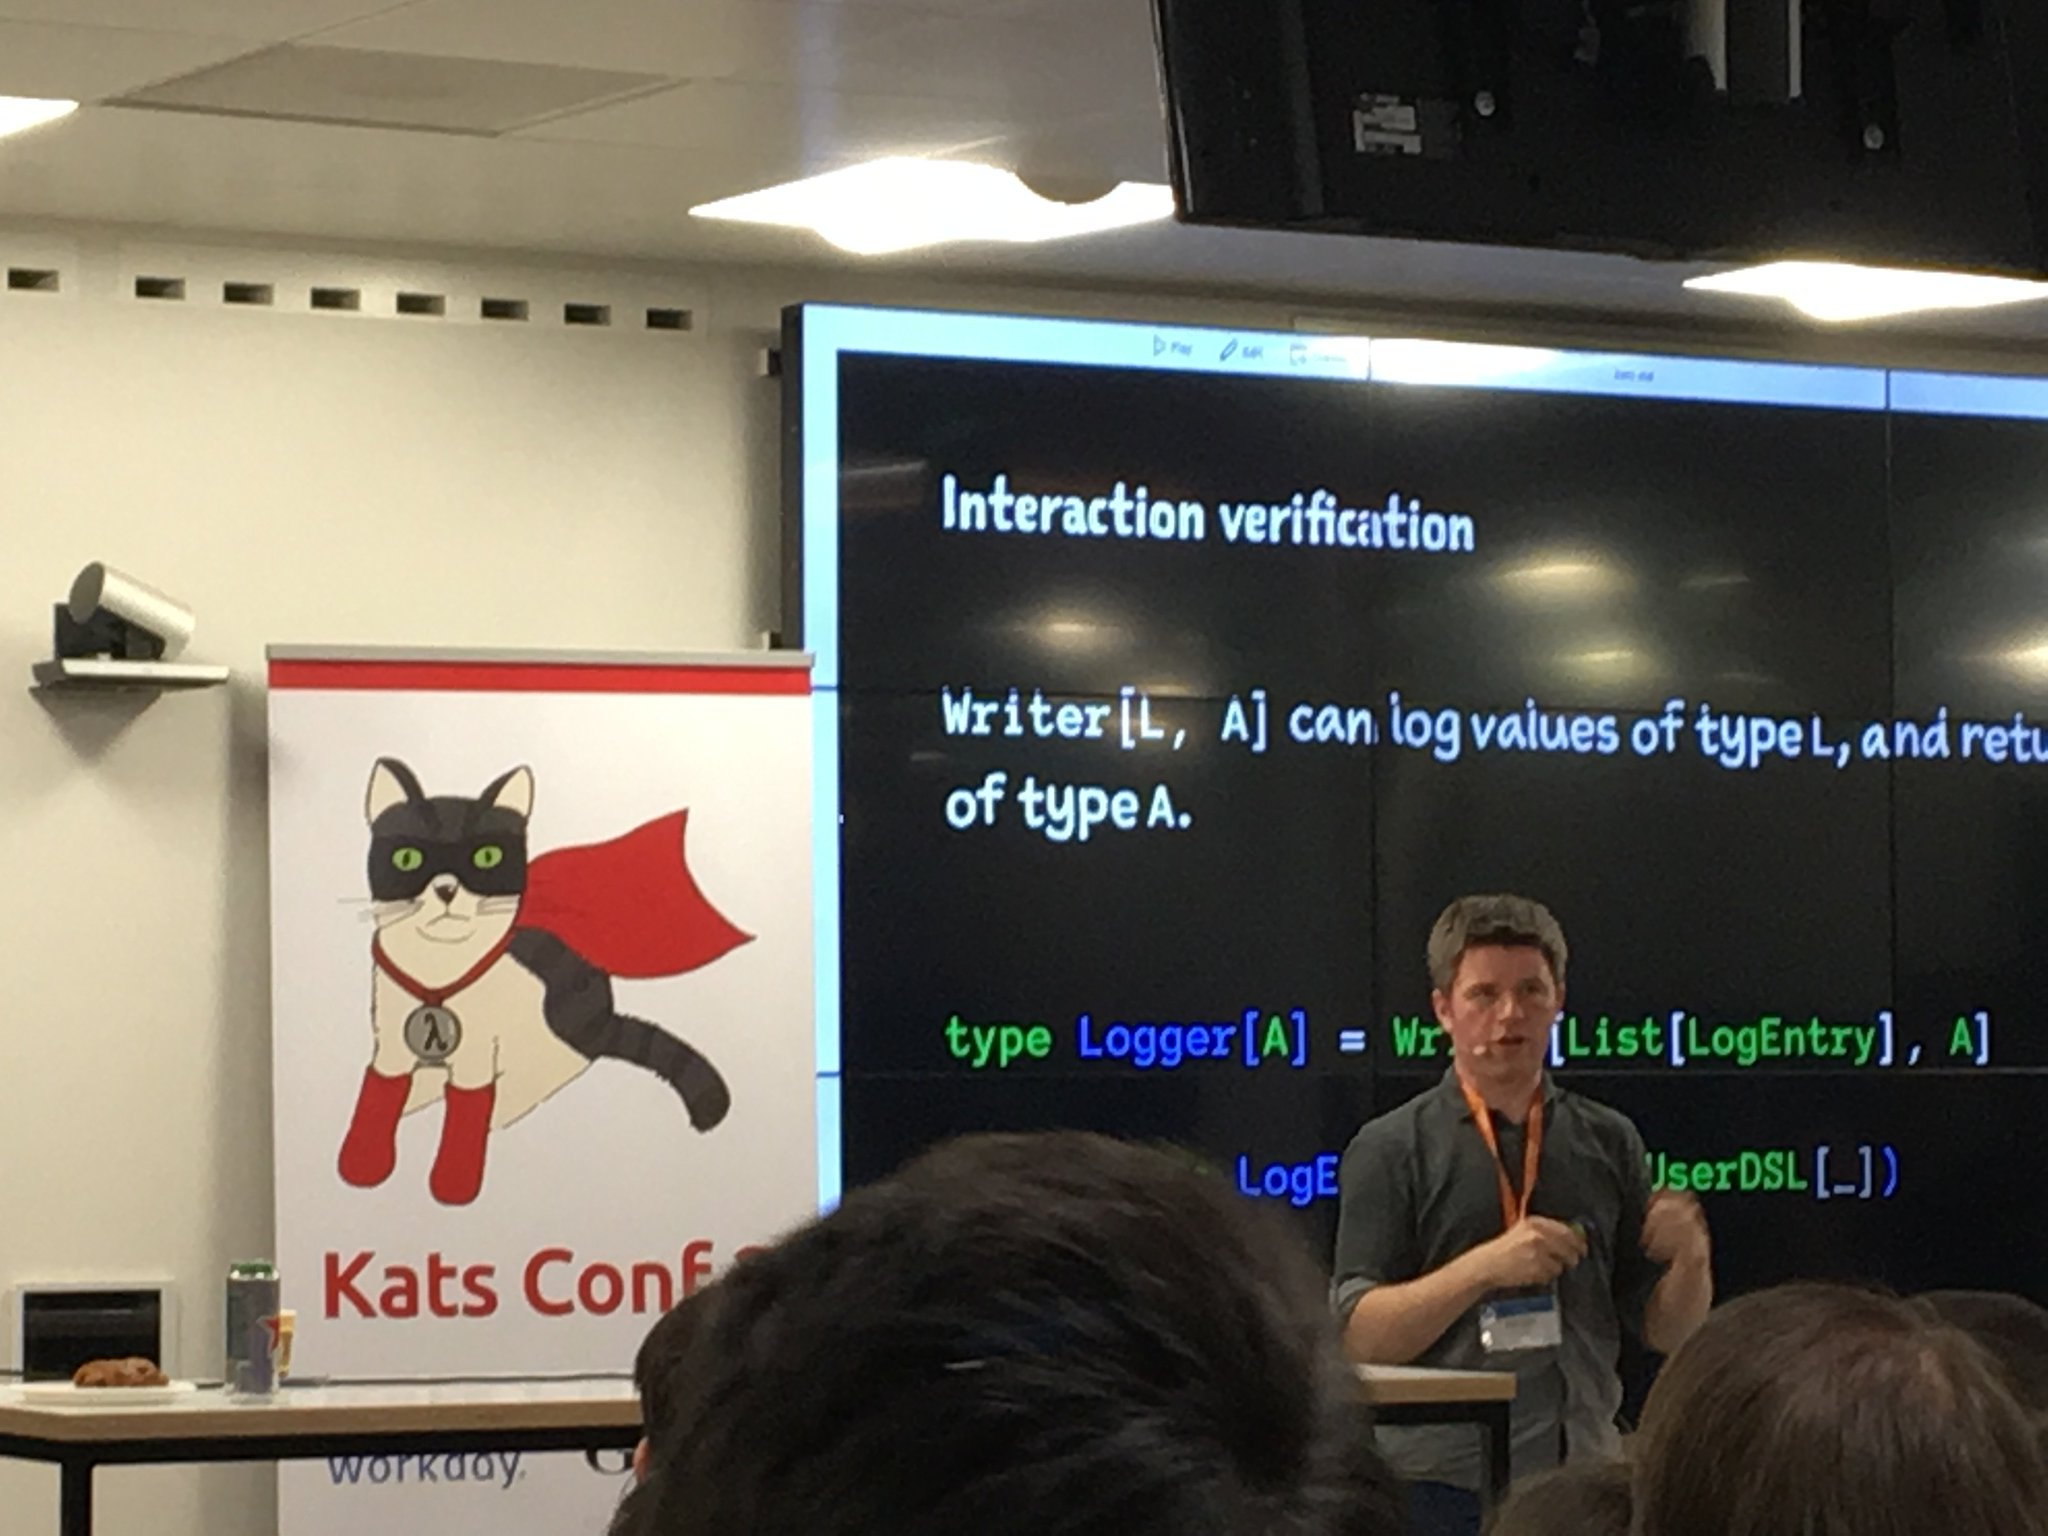 Who had 20:02 for the first Free Monad sighting at #katsConf2 ? @fiadliel totally lampshaded it! https://t.co/WmxseZm2ff